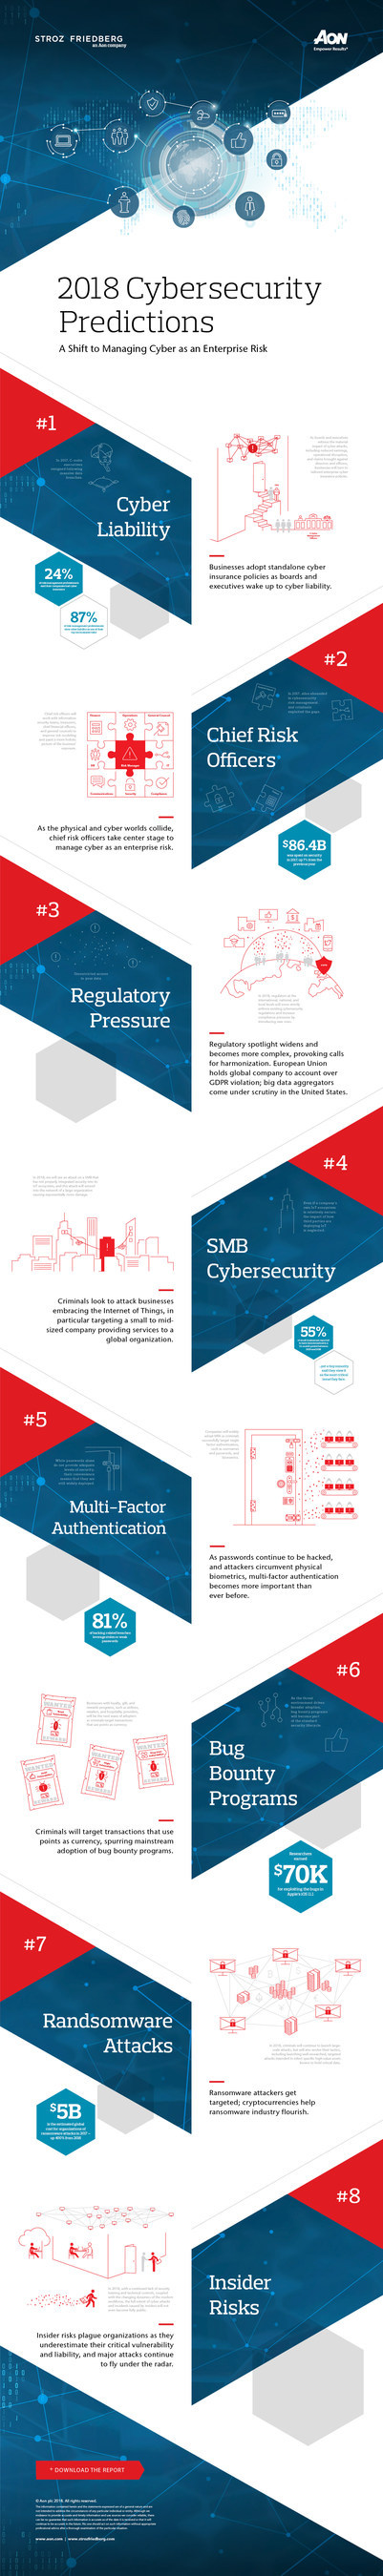 Aon plc 2018 Cybersecurity Predictions Infographic